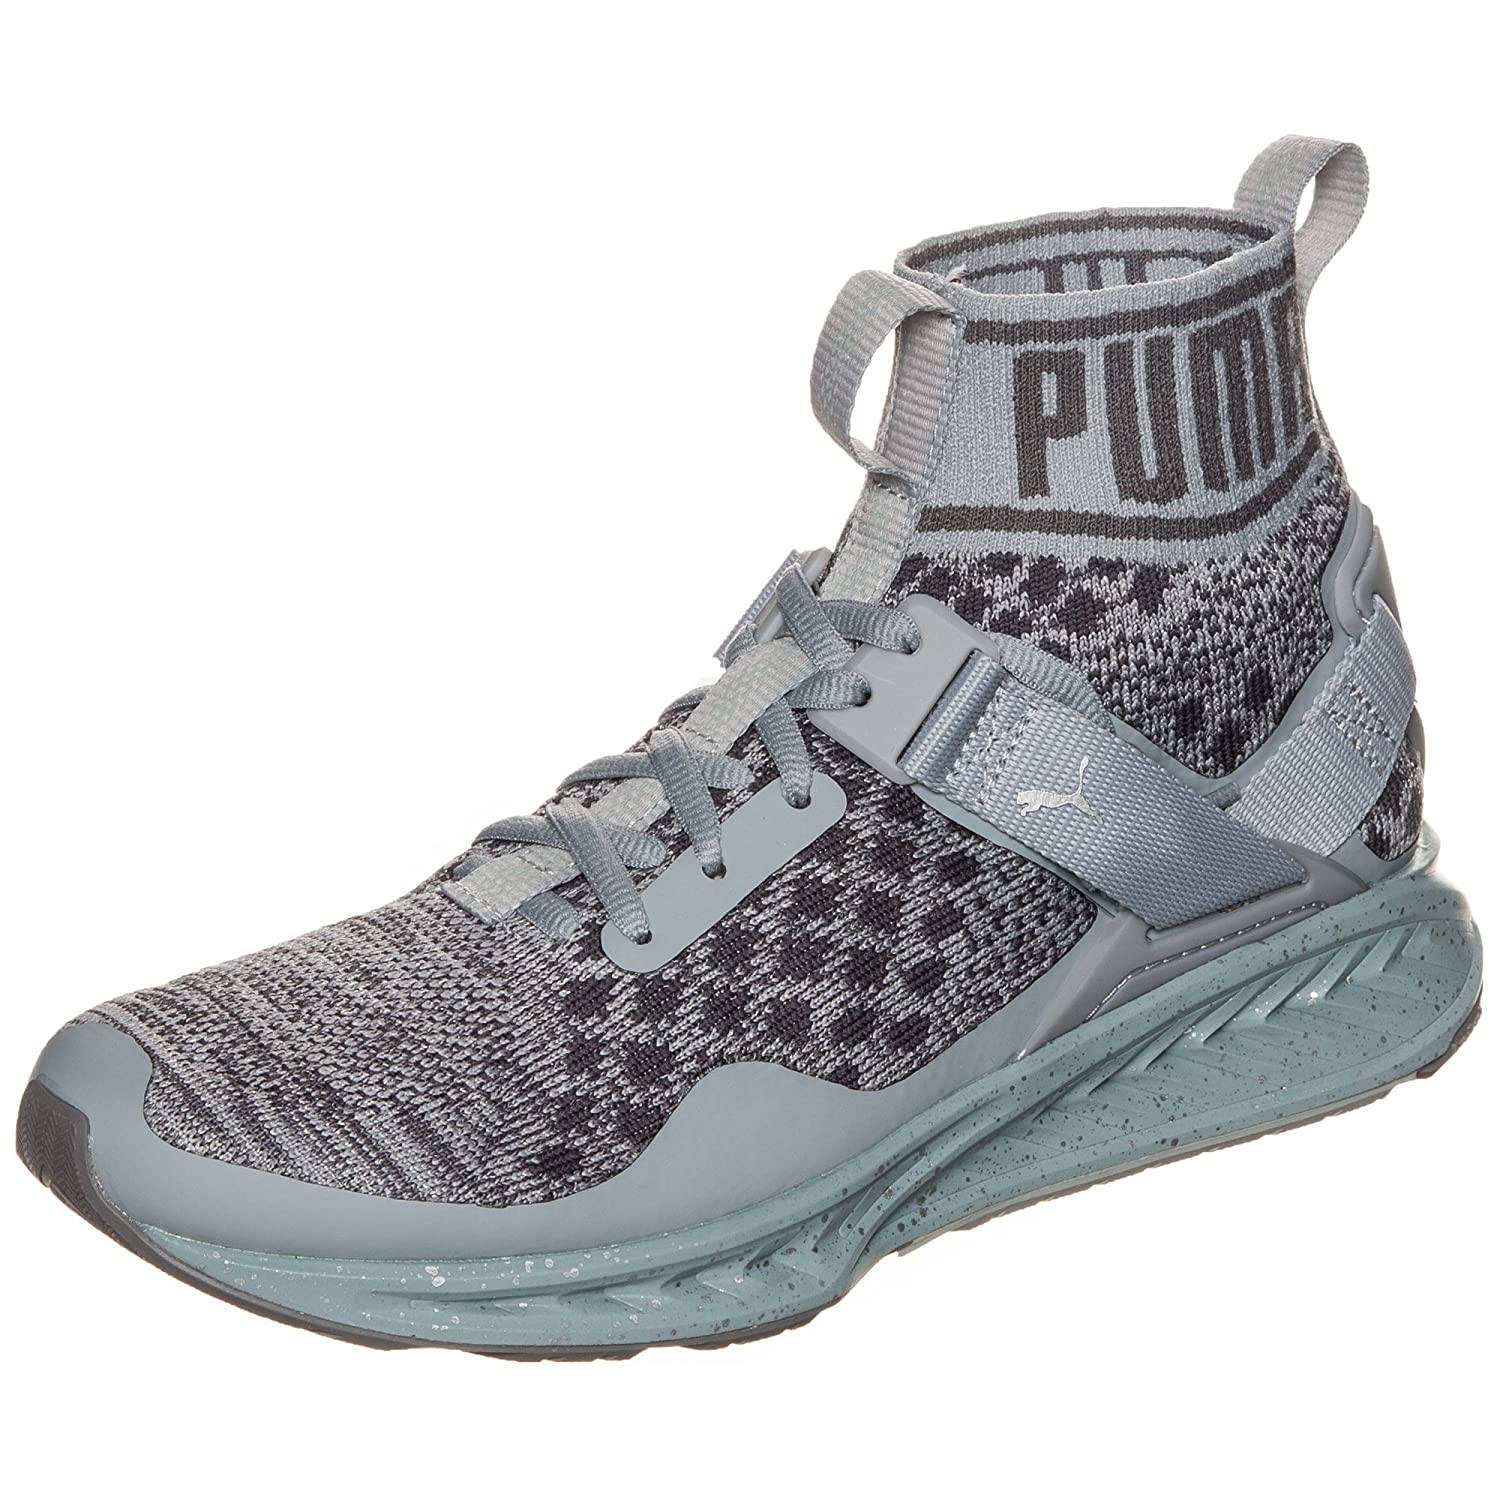 Puma Ignite Evoknit Metal Turnschuhe Damen 6.0 UK - 39.0 EU